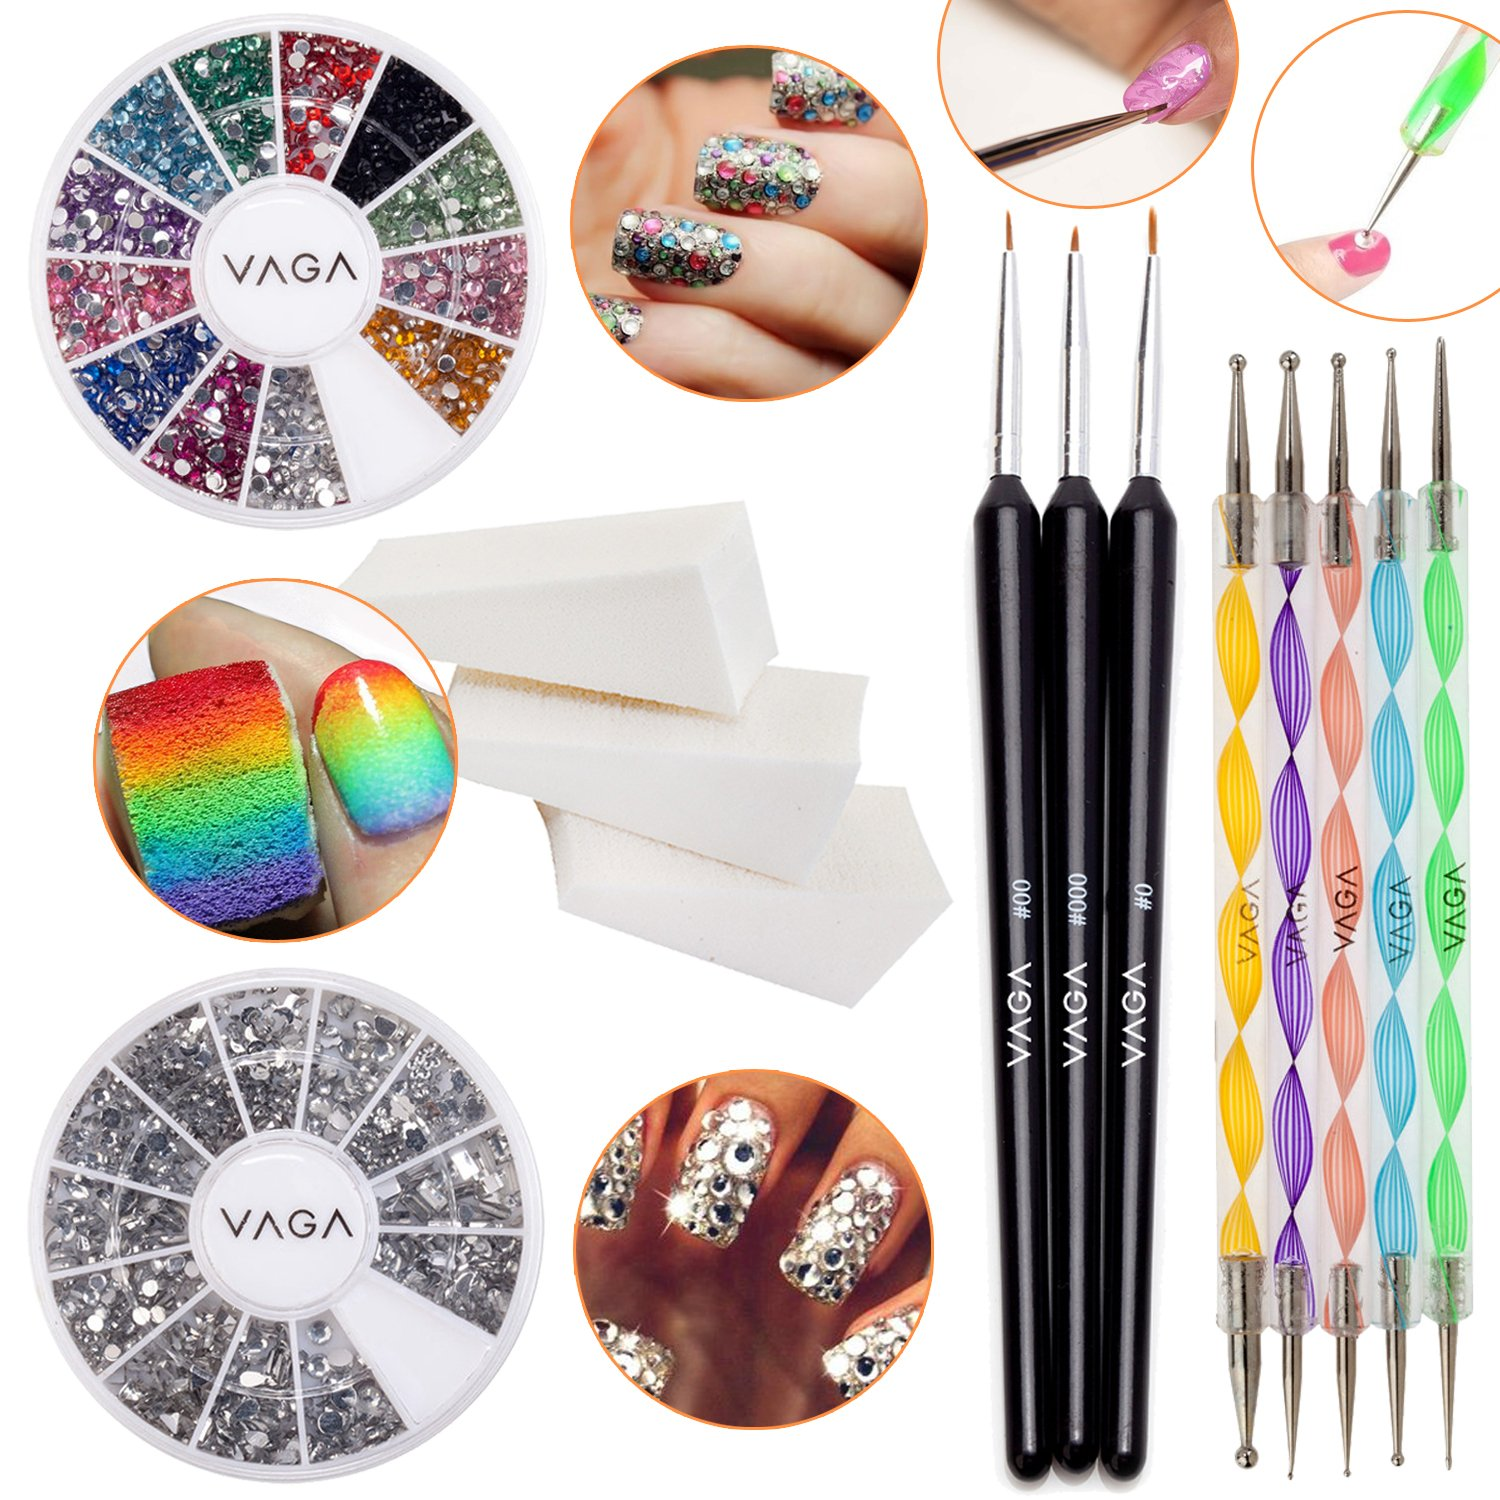 Nail Art Set With 3pcs Manicure Gradient Designs Stamping Wedges, 2 Wheels With Silver And Colourful Rhinestones / Crystals, 3 Detail Brushes And 5 Nailart Dotting Tools / Dotters By VAGA